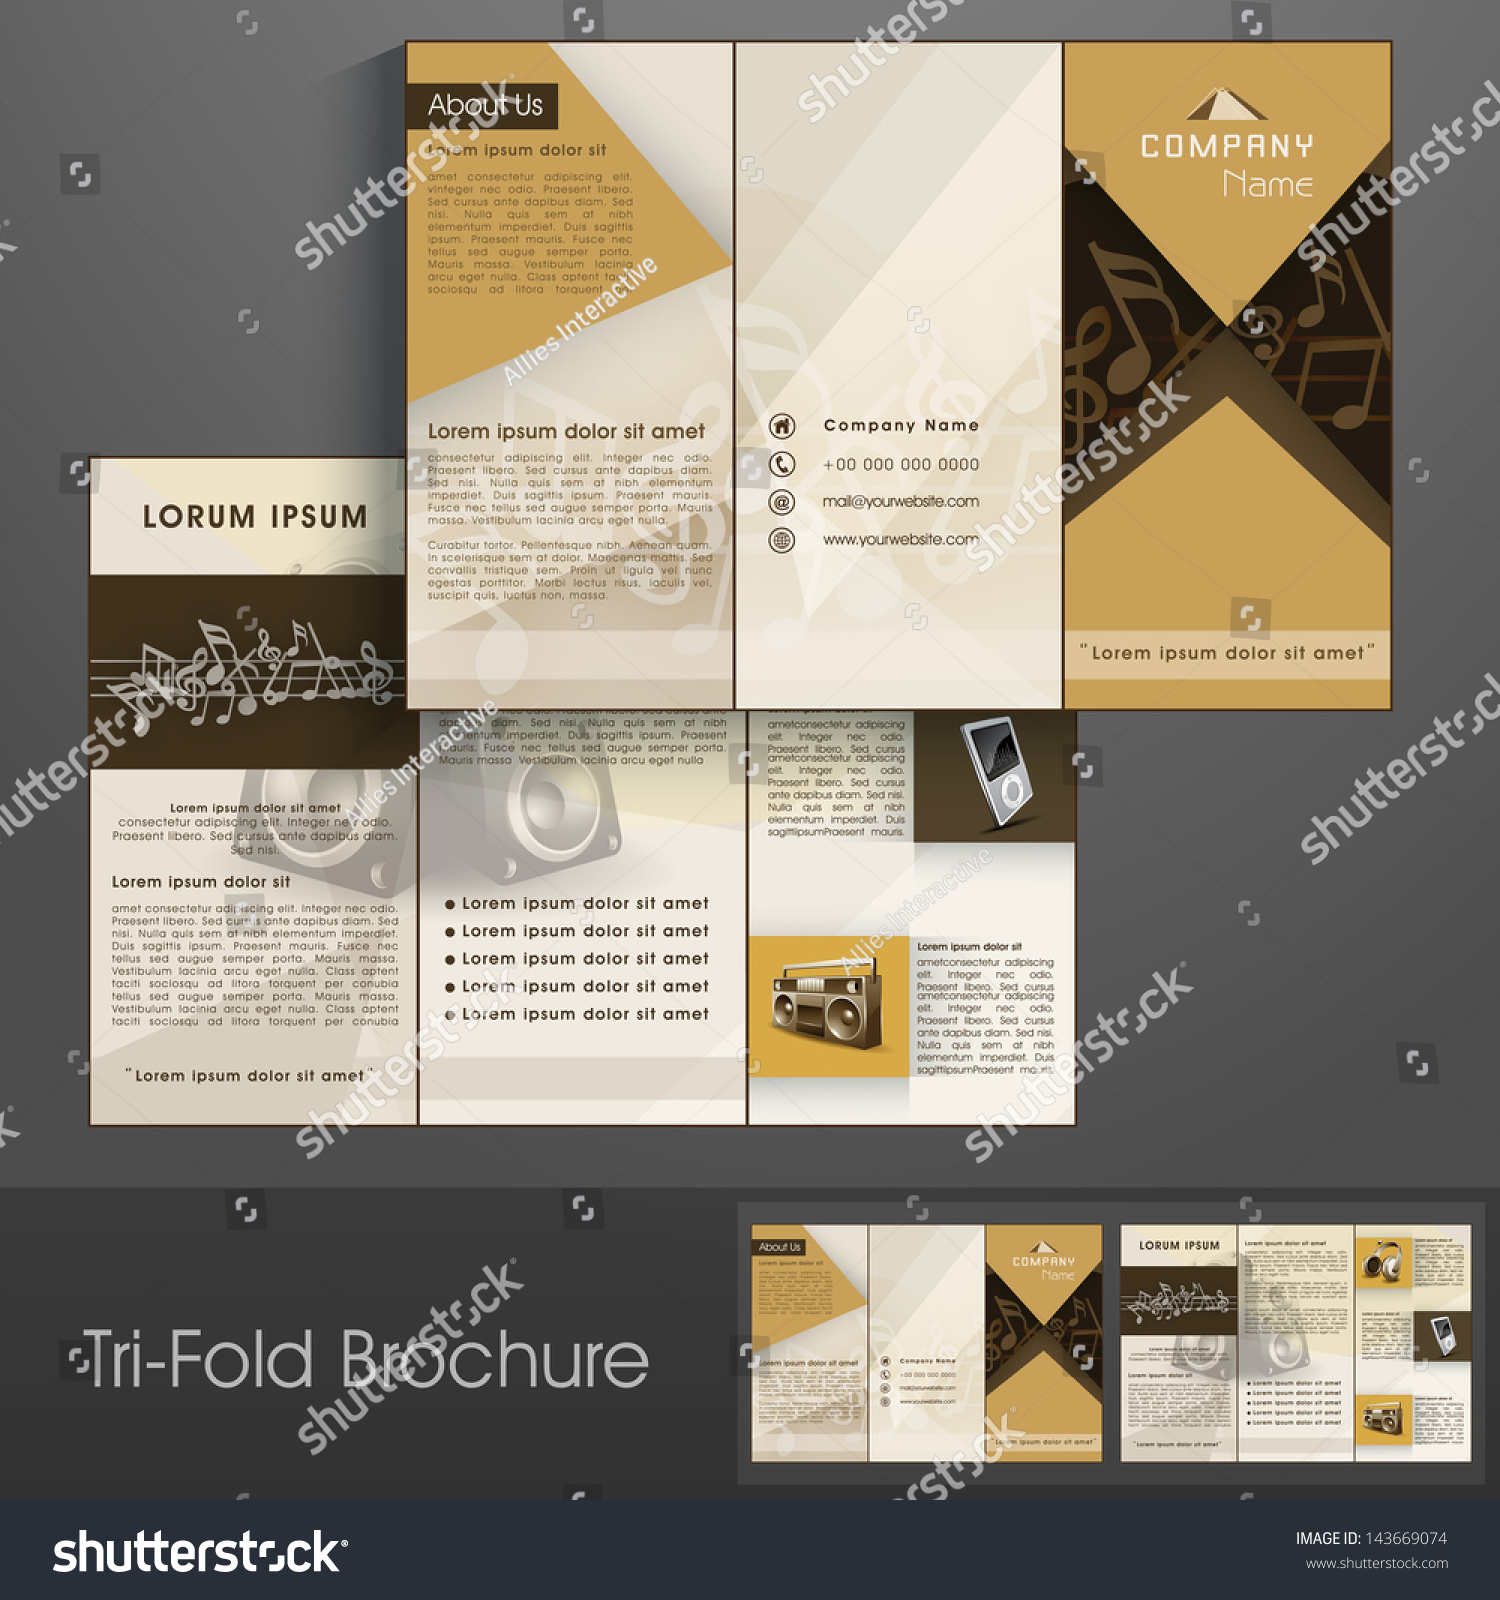 planet brochure template - attractive clinic a3 tri fold brochure template attractive